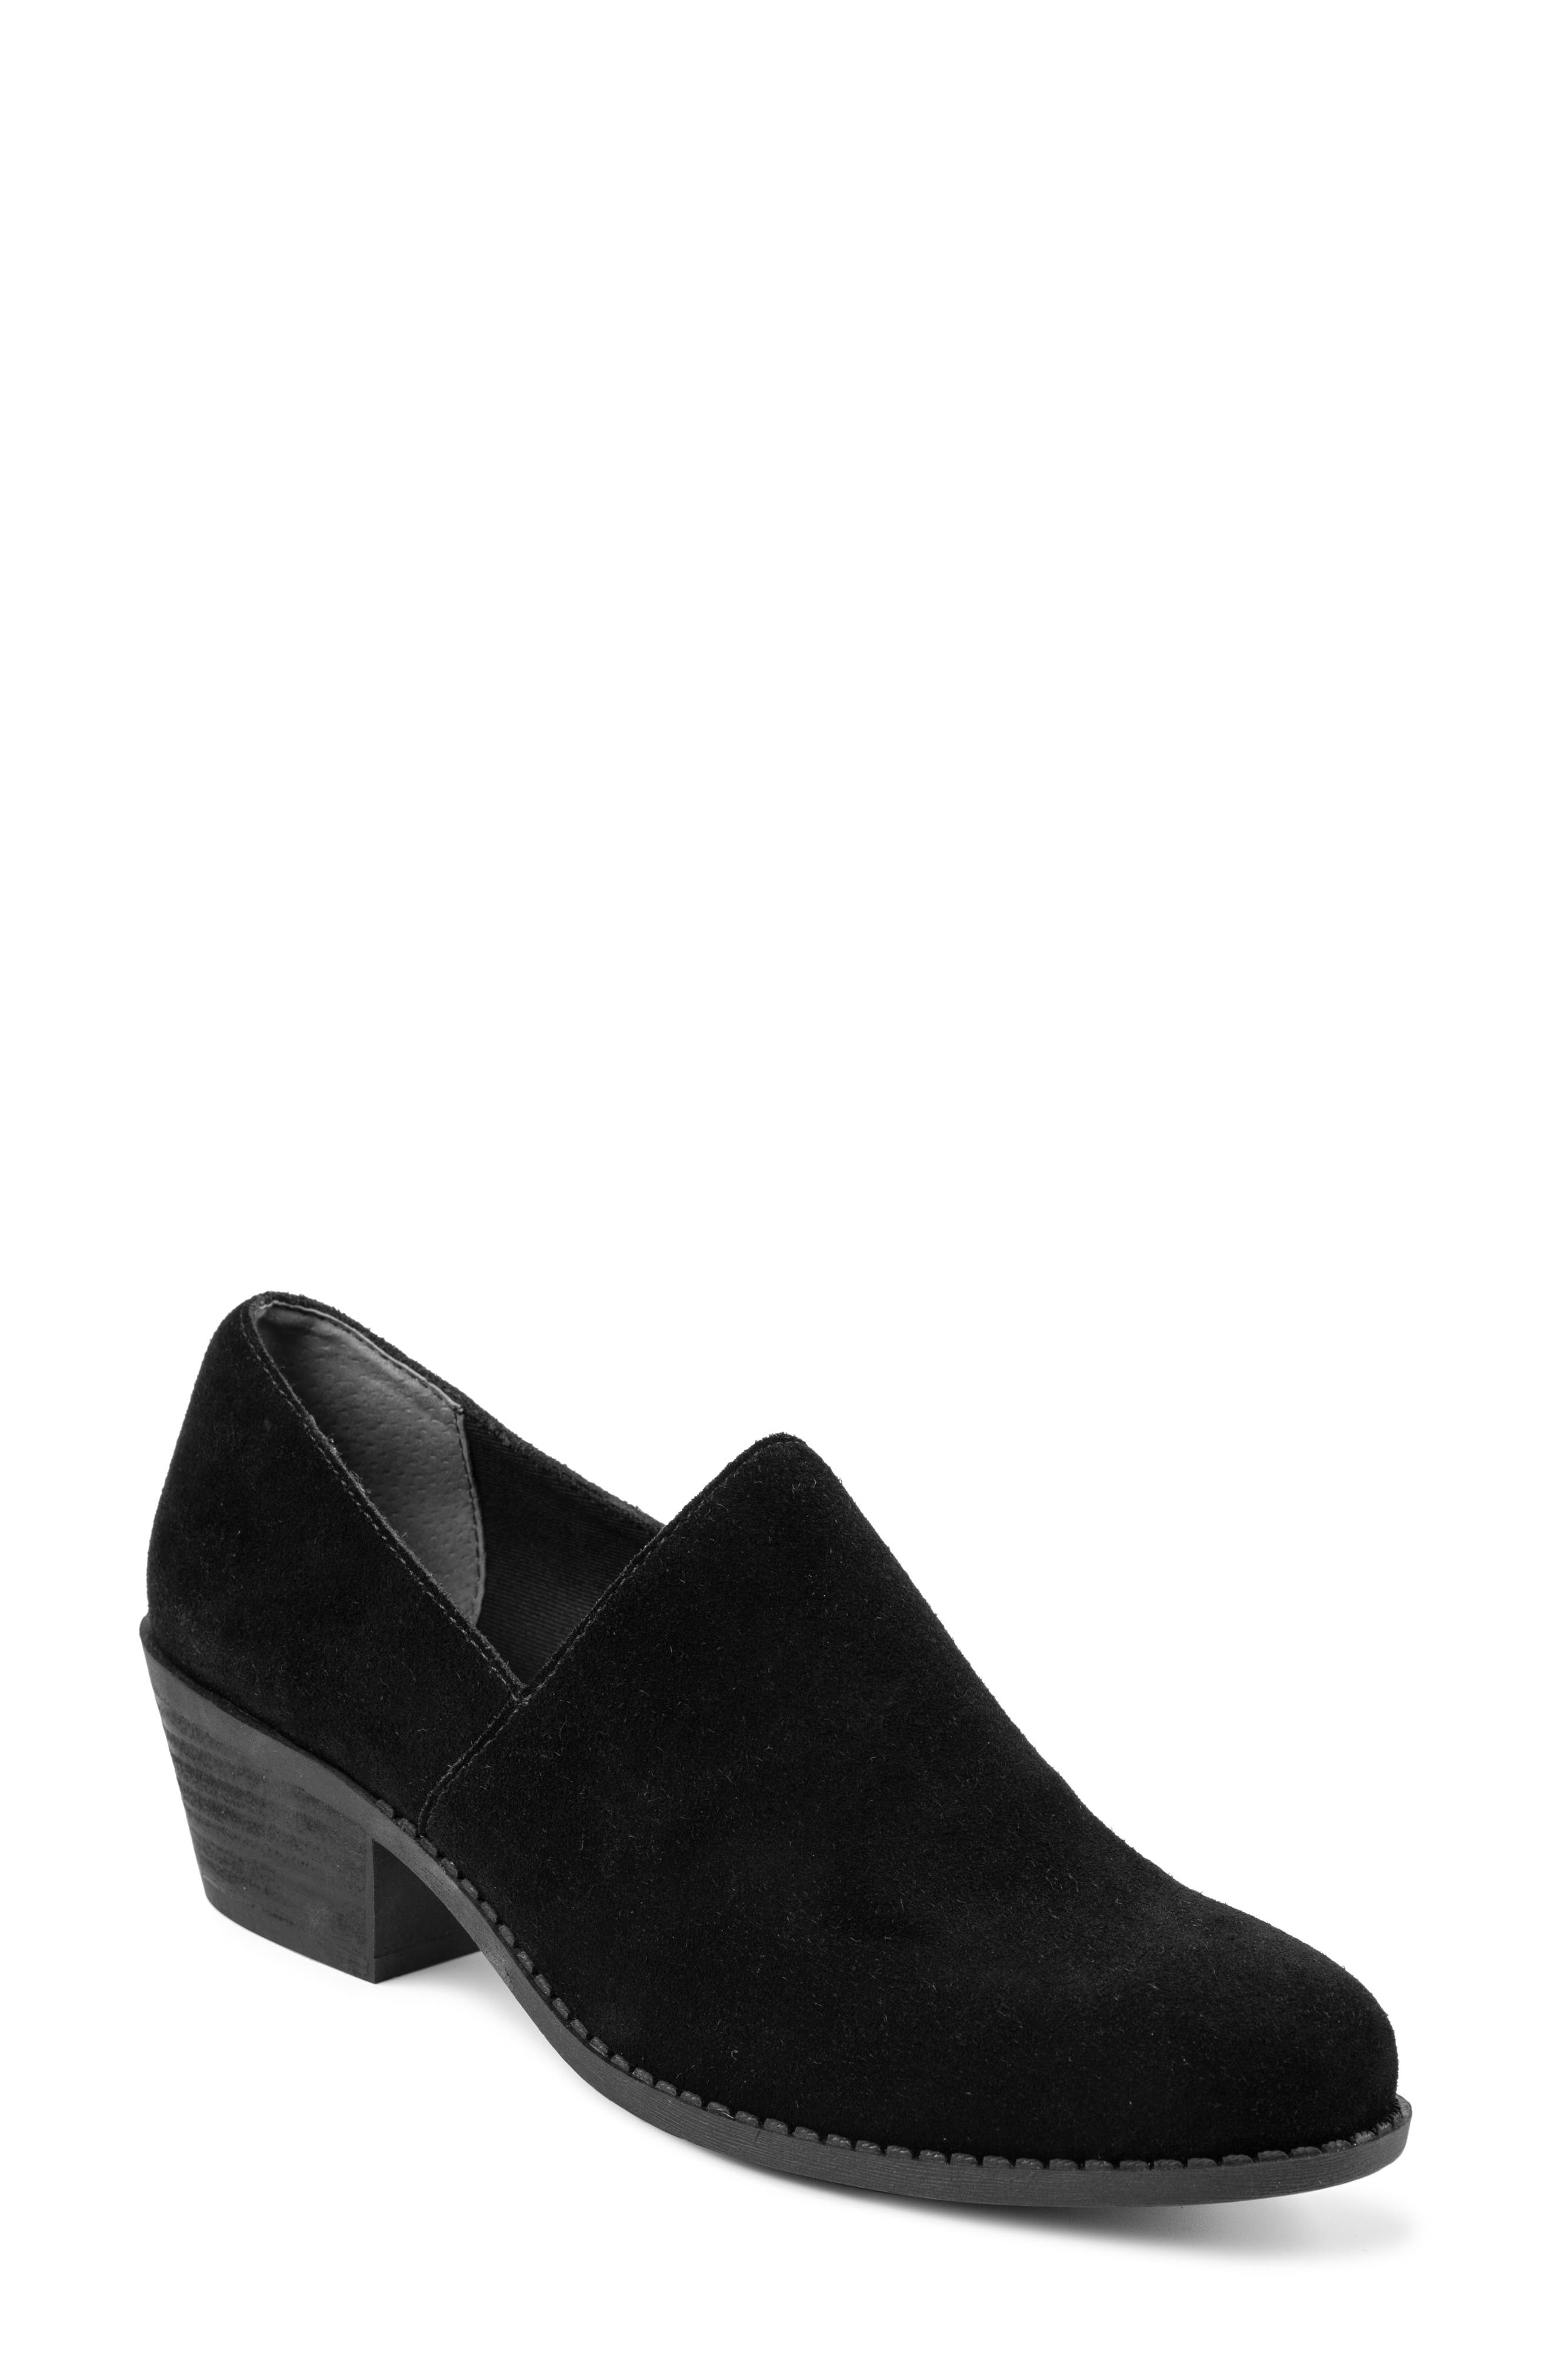 Women's Me Too Booties \u0026 Ankle Boots